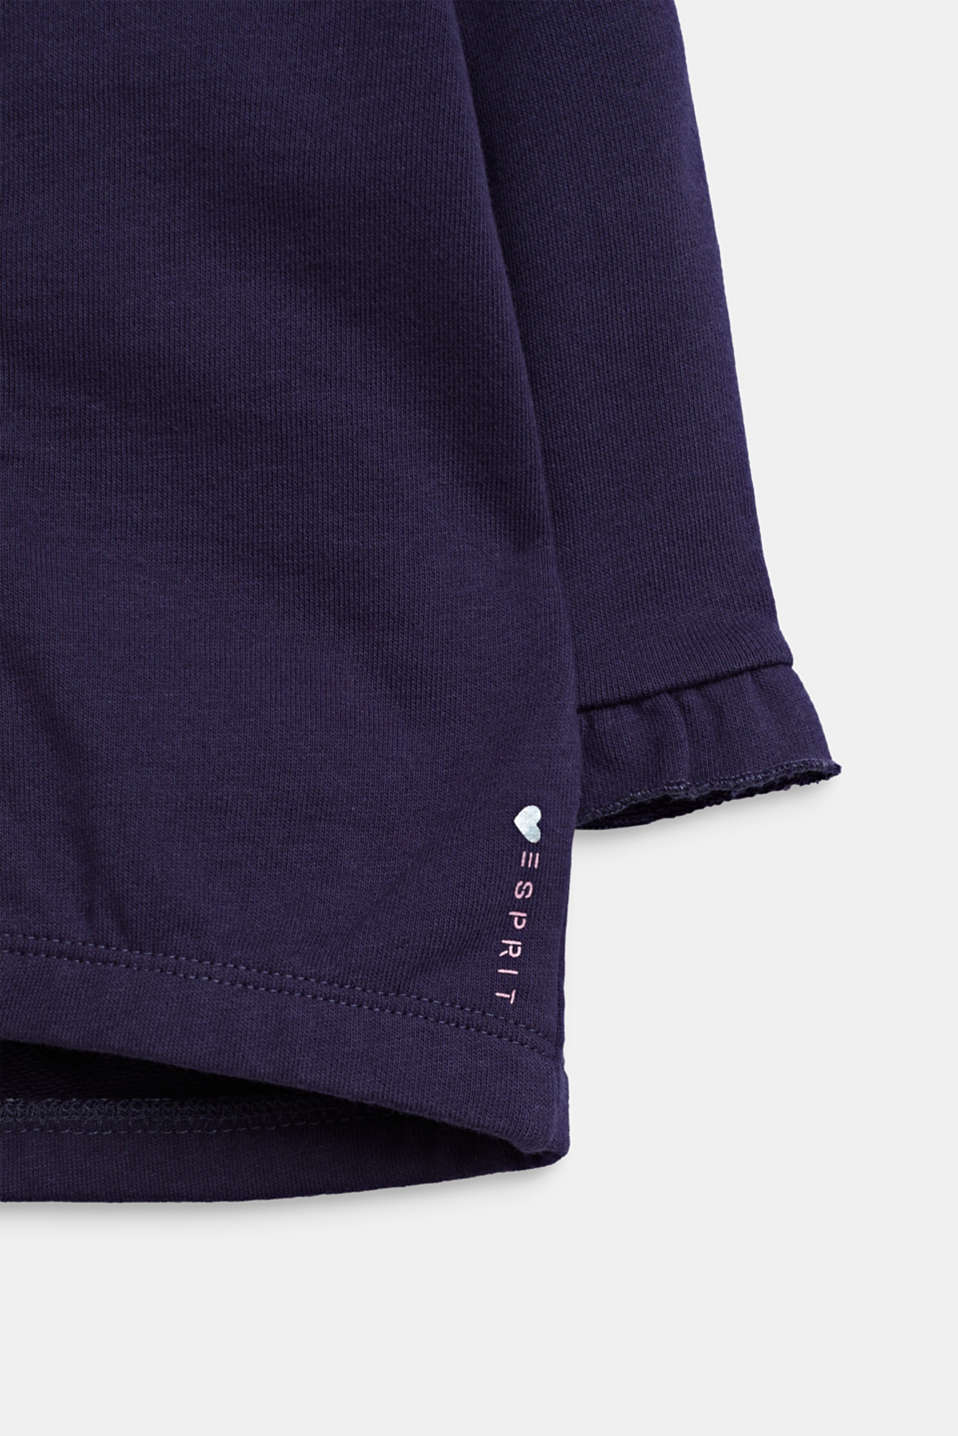 Sweatshirt cardigan with hood, 100% cotton, LCMIDNIGHT BLUE, detail image number 3